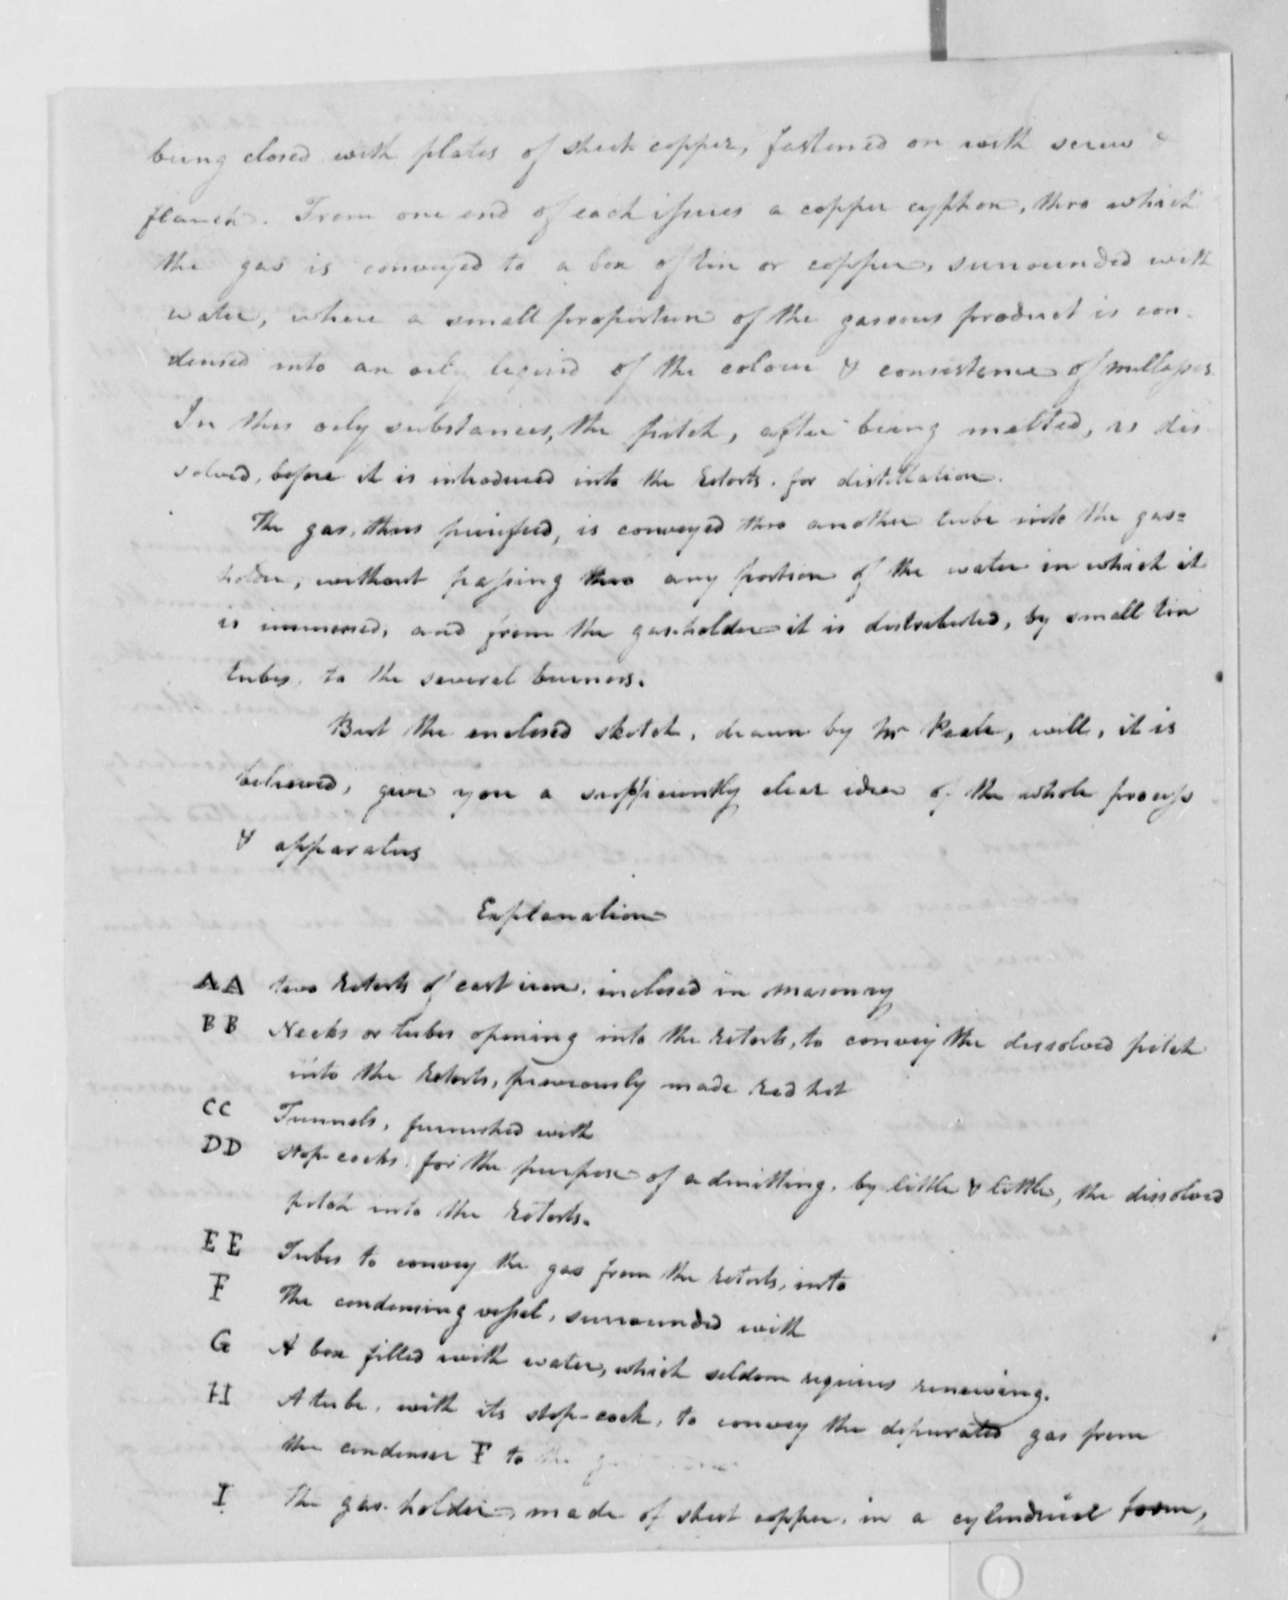 Robert Patterson to Thomas Jefferson, June 20, 1816, with Drawings